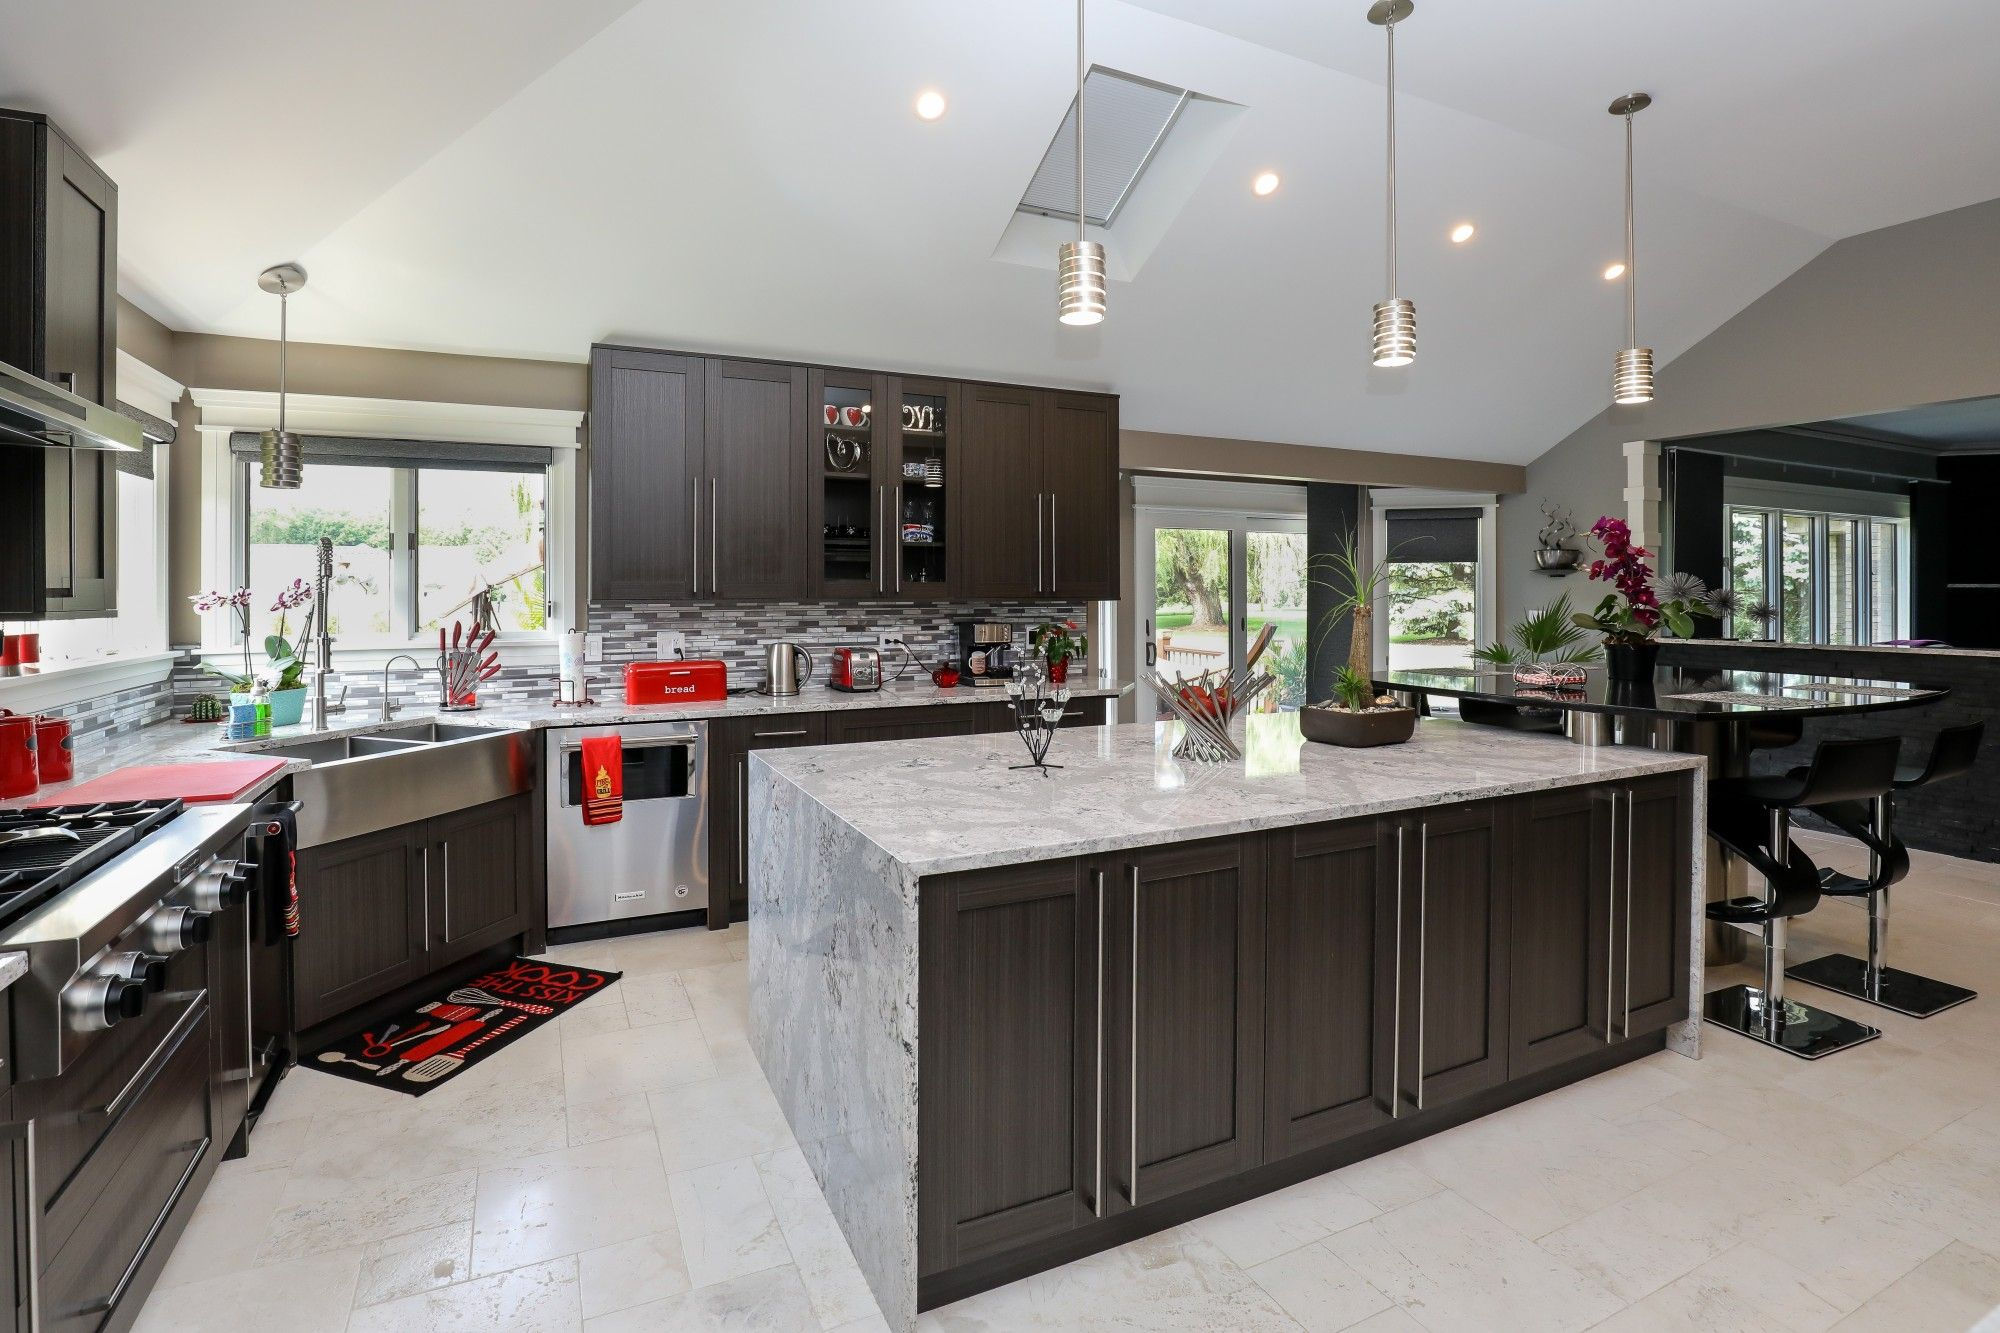 Melamine Gallery Kitchen And Bathroom Cabinets Kitchen Cabinets Bathroom Vanity Cabinets Kitchen Cabinets In Bathroom Bath Cabinets Bathroom Furniture